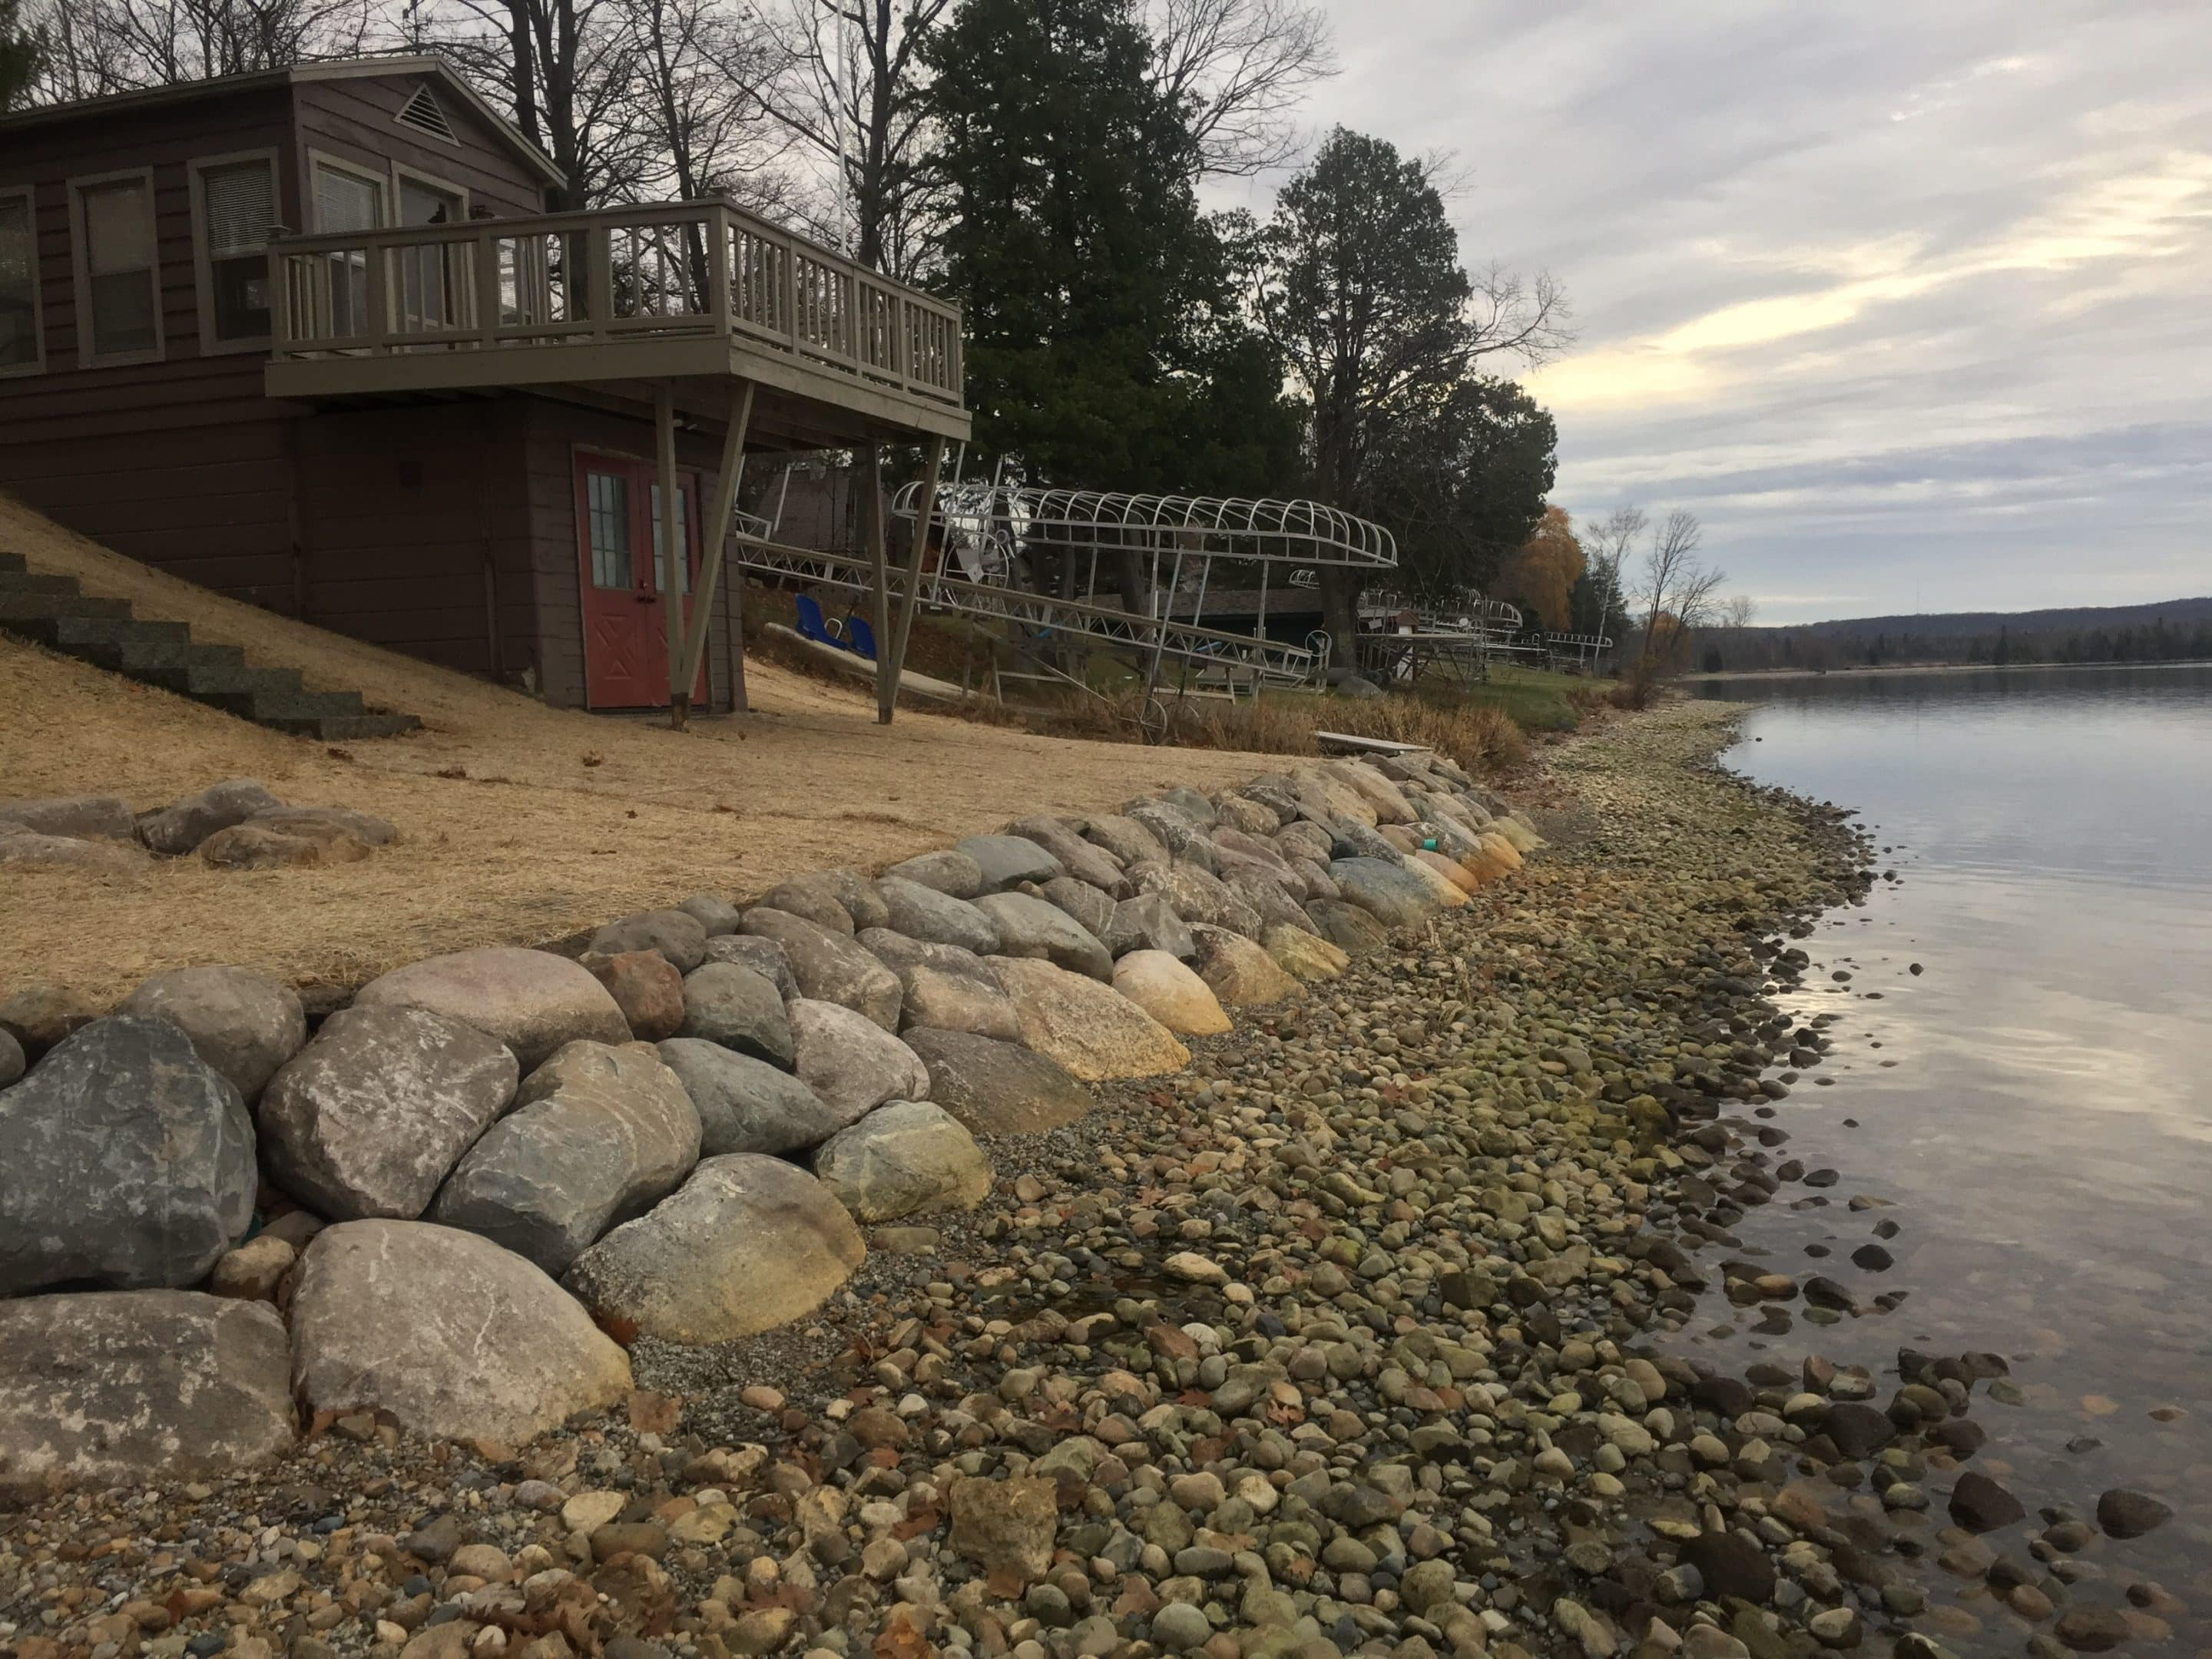 lake front landscape installation prevents erosion and adds enjoyment in a strikingly beautiful way